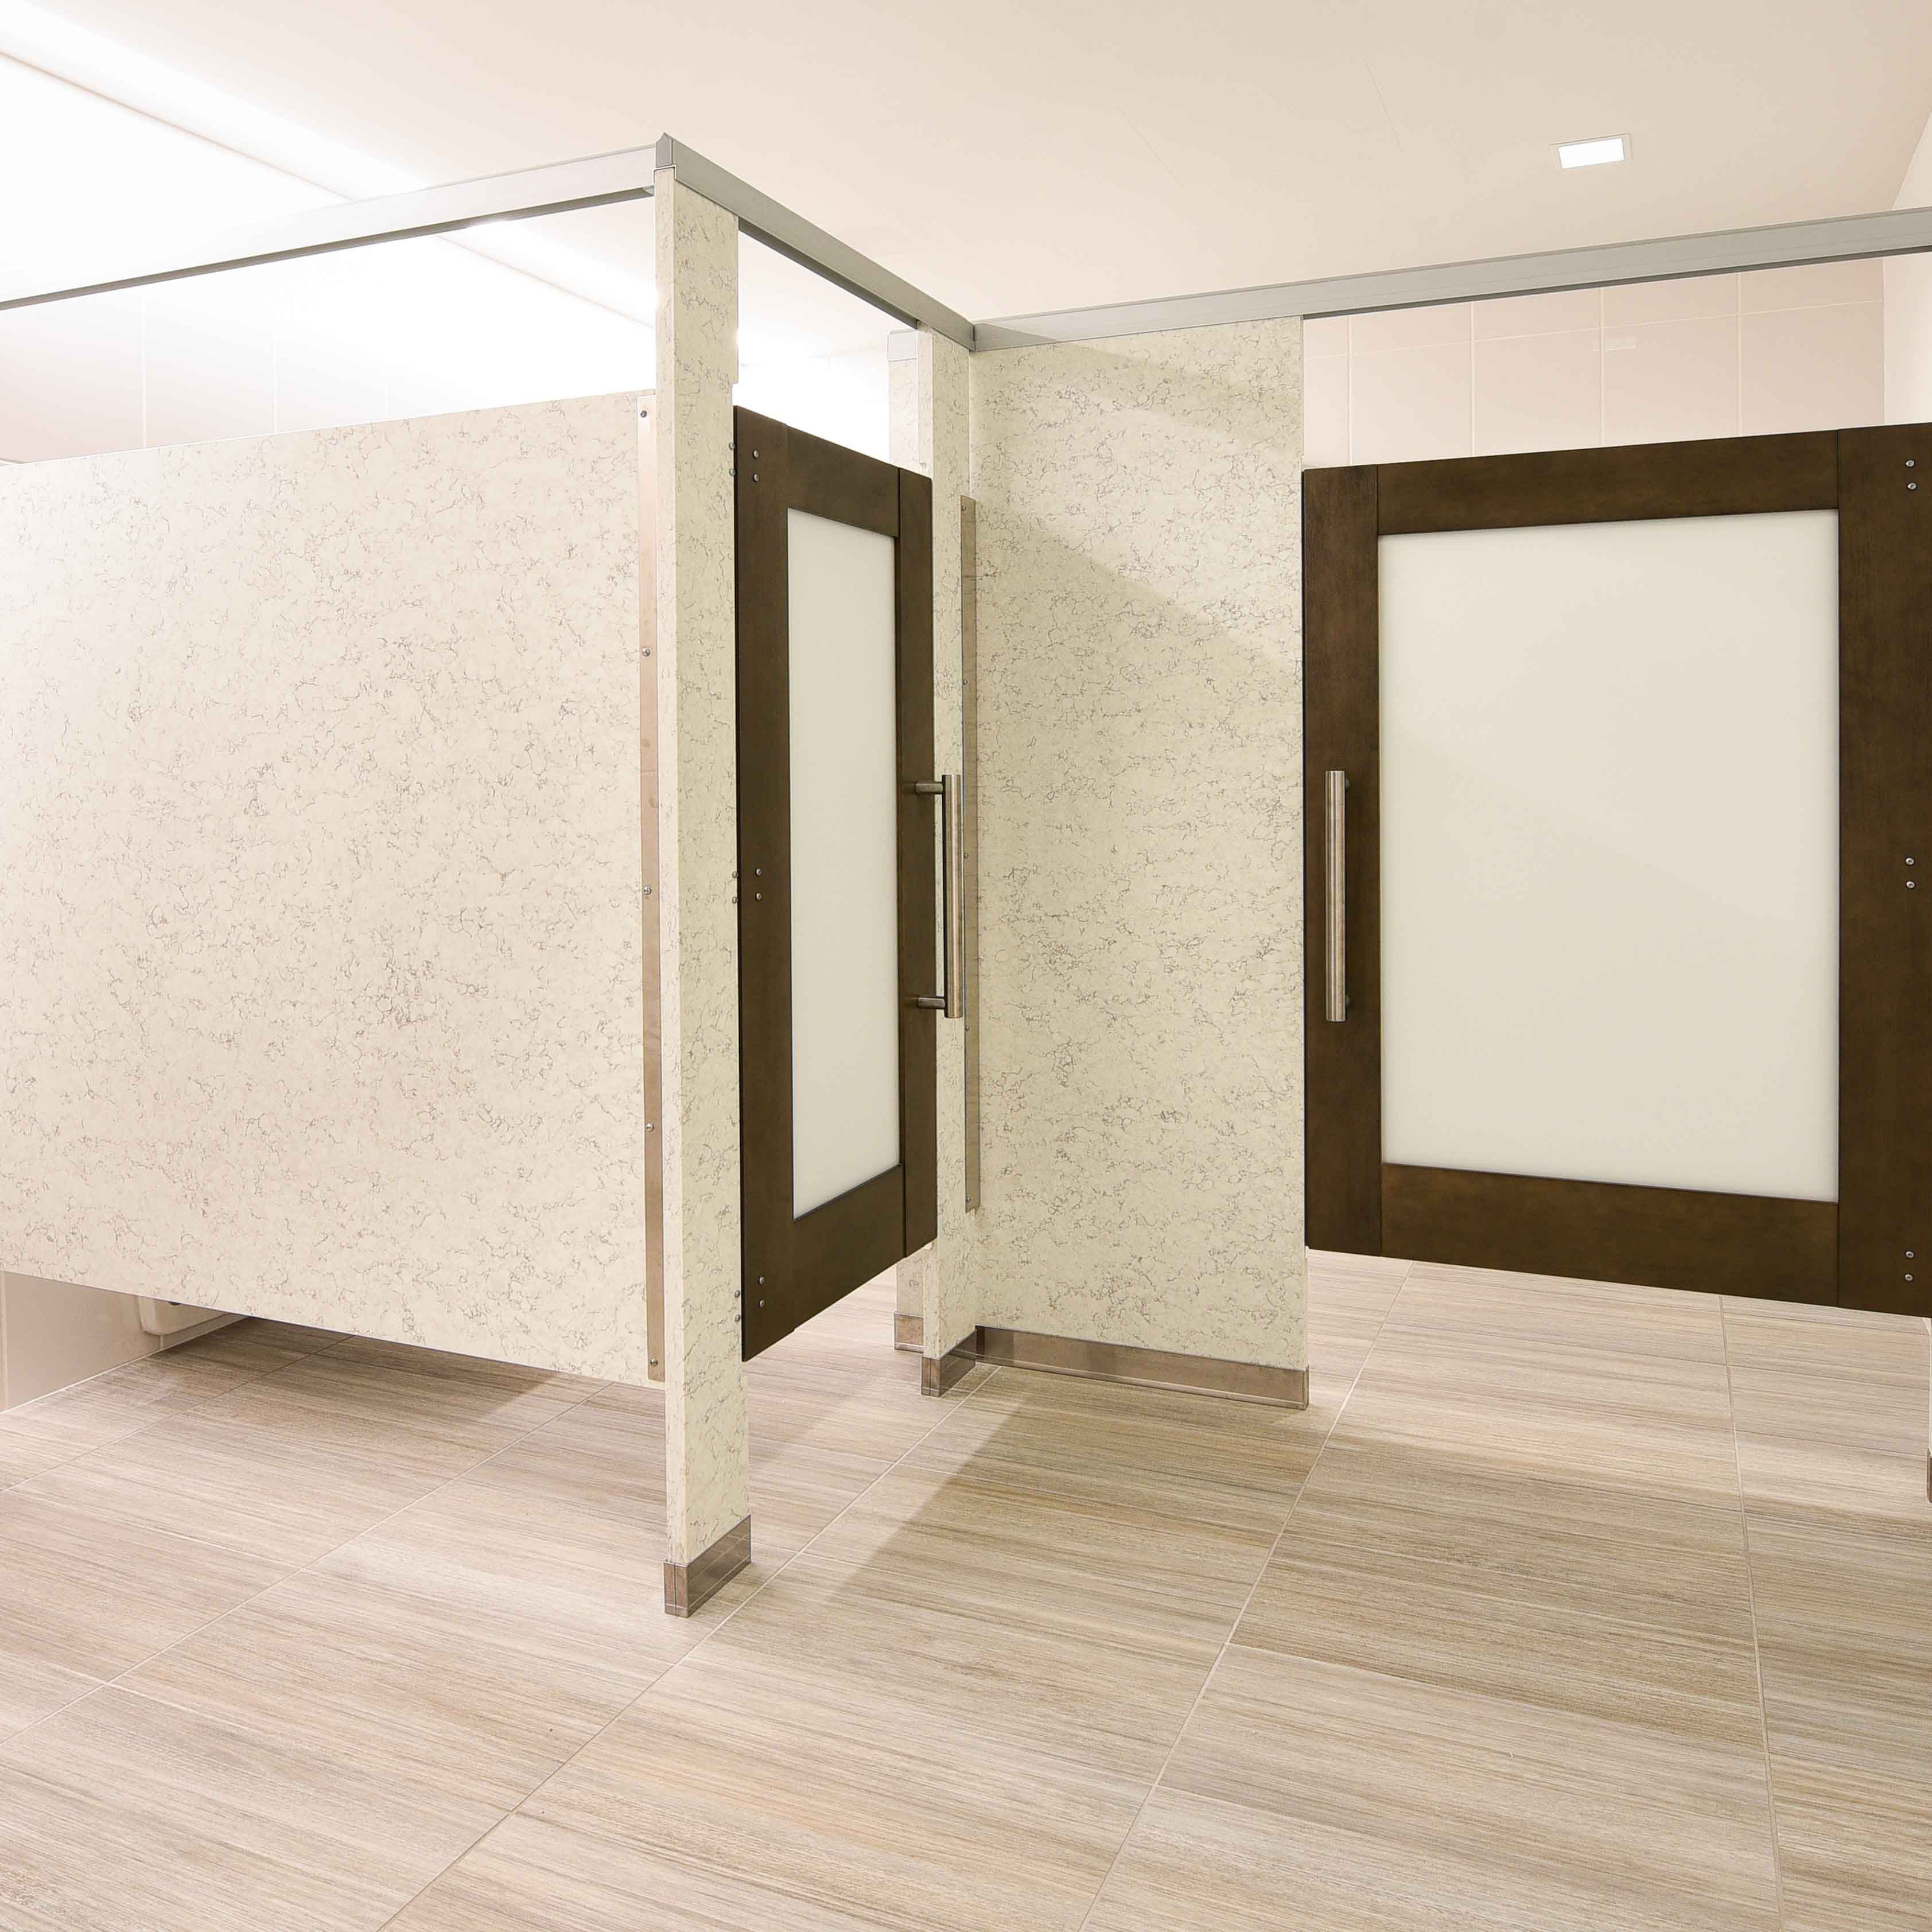 Ironwood Manufacturing Stone Toilet Partition And Bathroom Doors